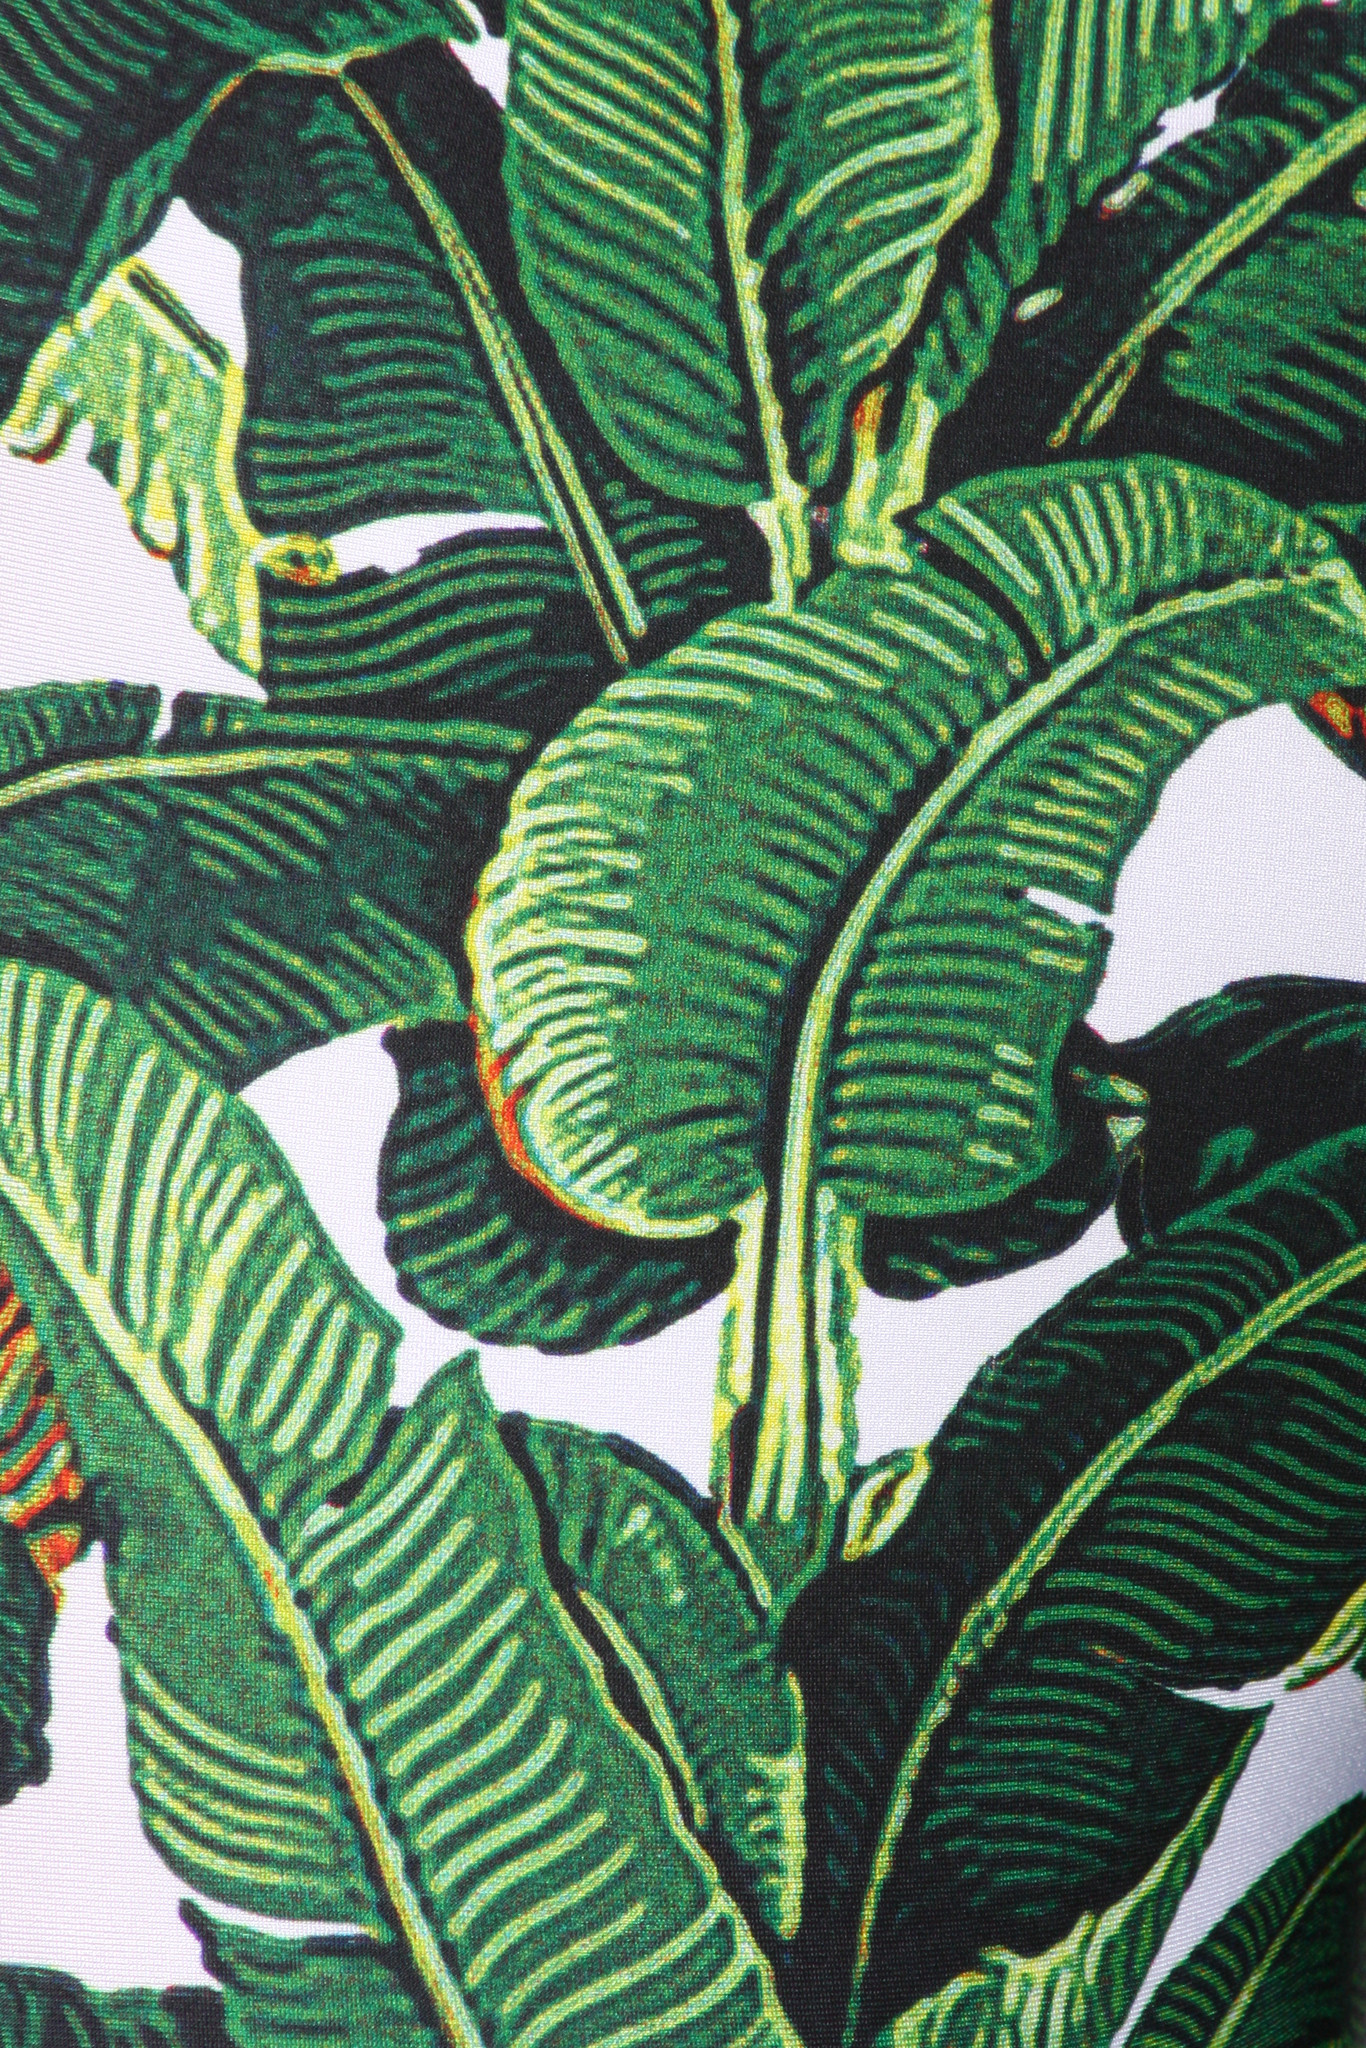 Black And White Floral Wallpaper Download Beverly Hills Banana Leaf Wallpaper Gallery